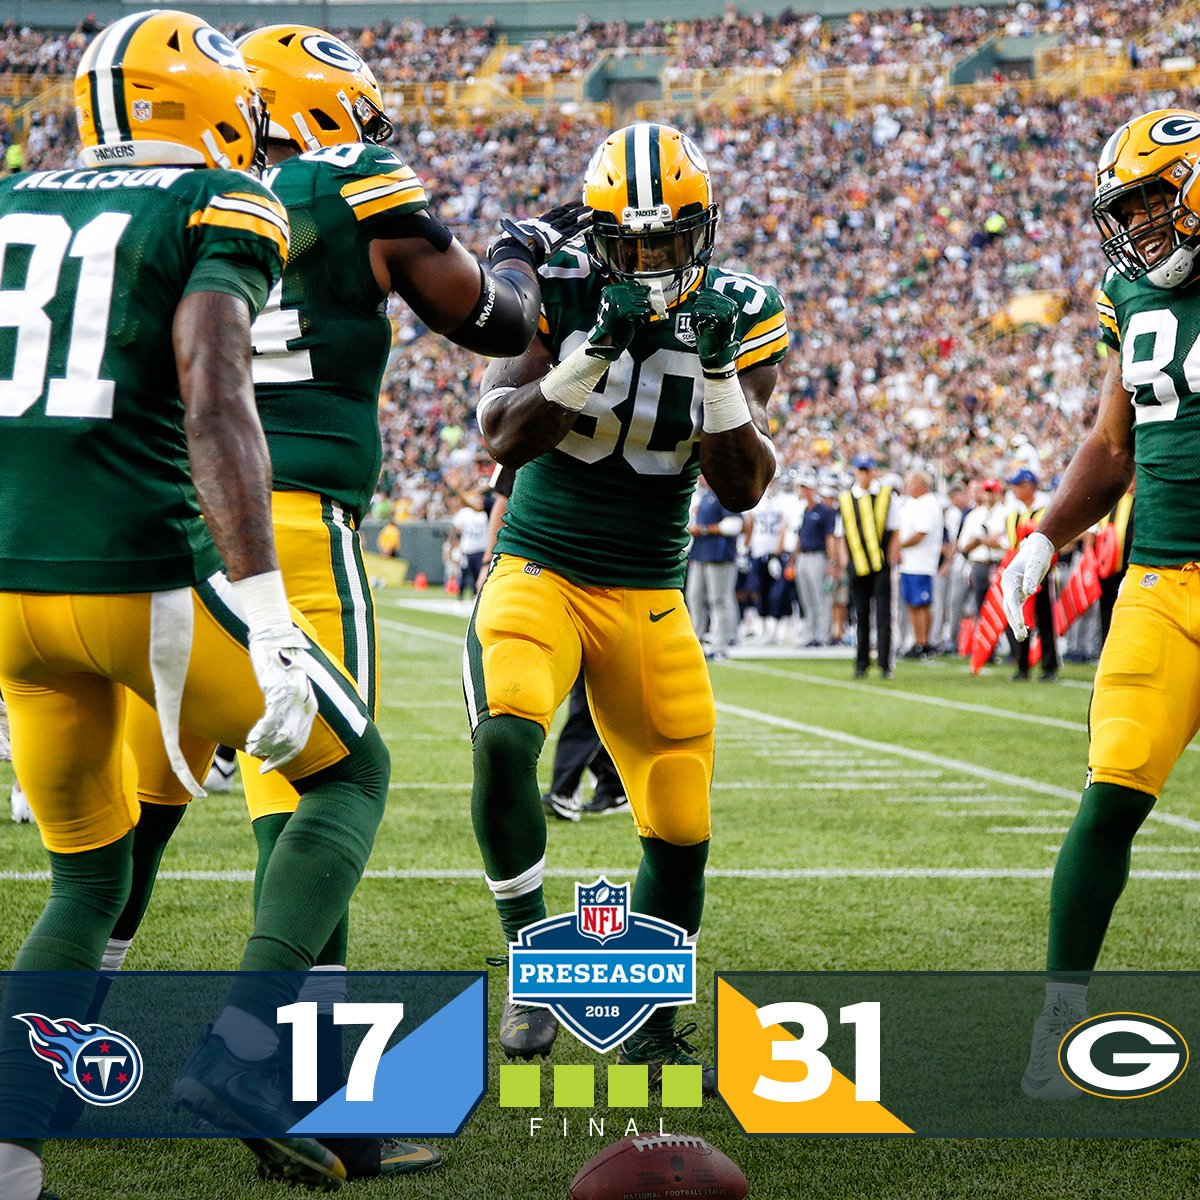 FINAL: @packers start off the preseason with a WIN! #TENvsGB <br>http://pic.twitter.com/KSOBdlLQHM